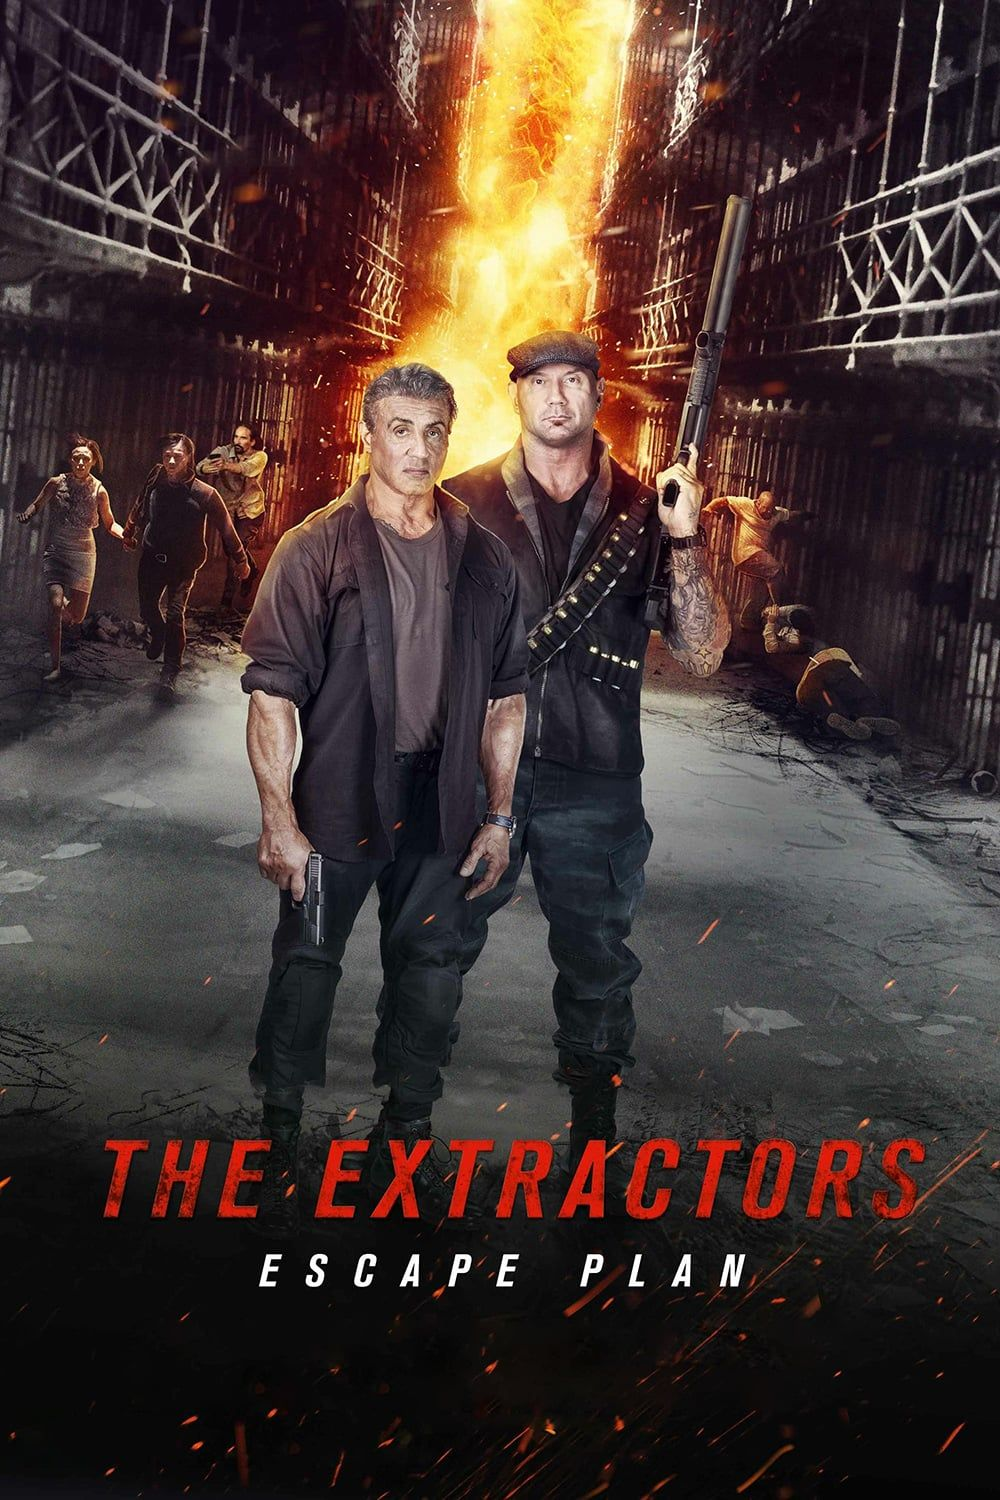 Escape Plan The Extractors Filme Cmplet E Dublad Penjara Devon Jaime King